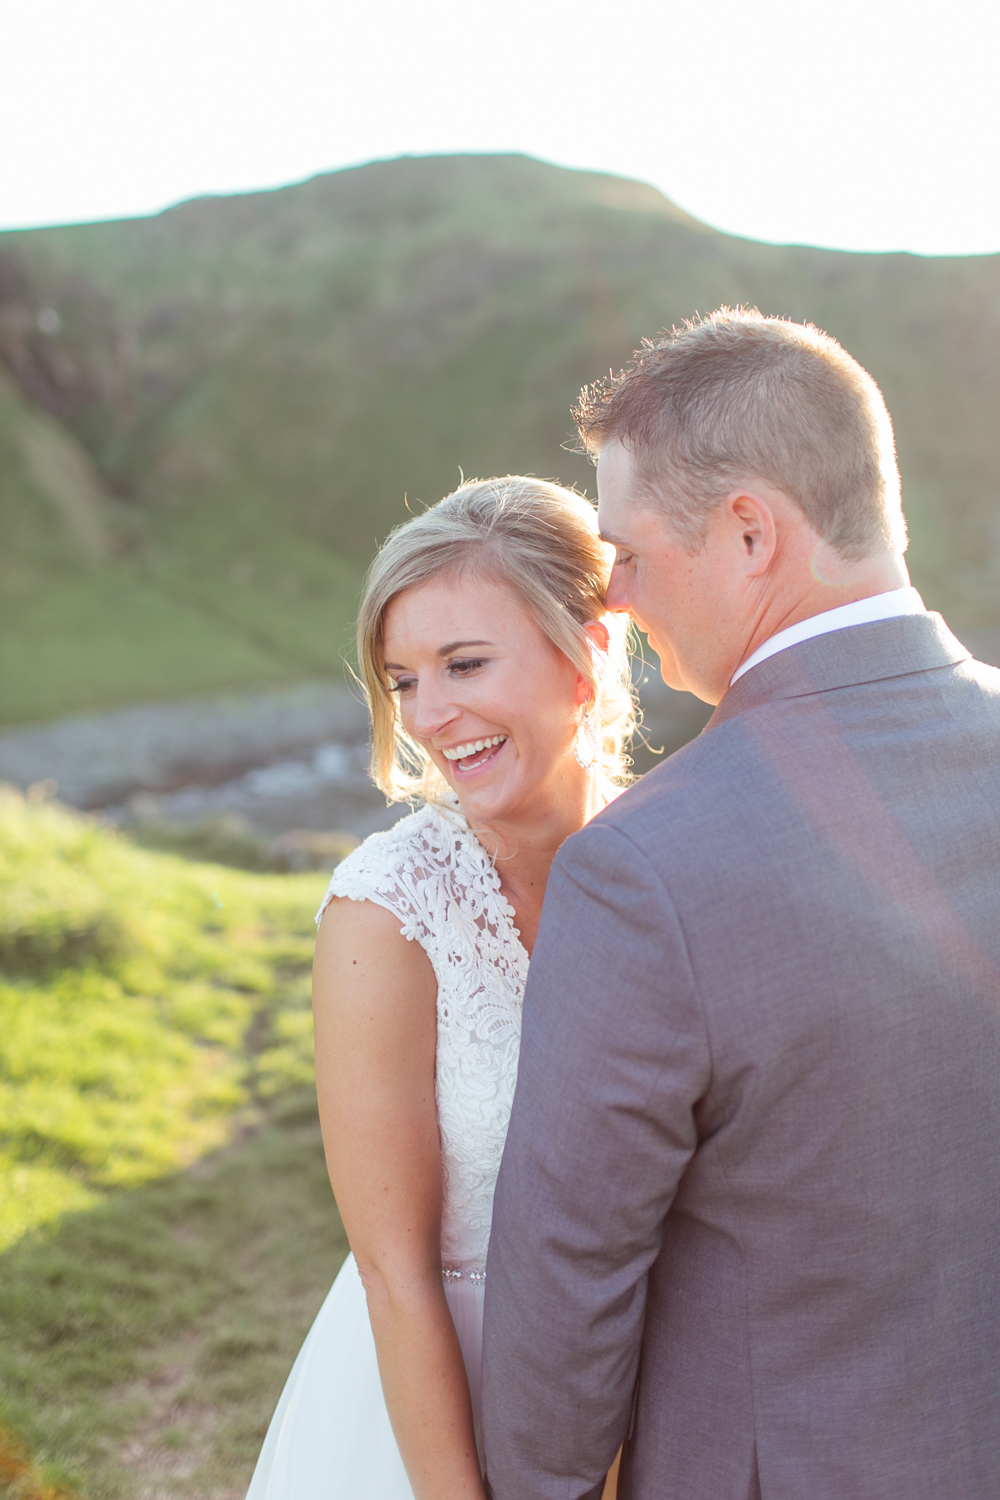 bride is naturally laughing in the photograph filled with golden sunlight